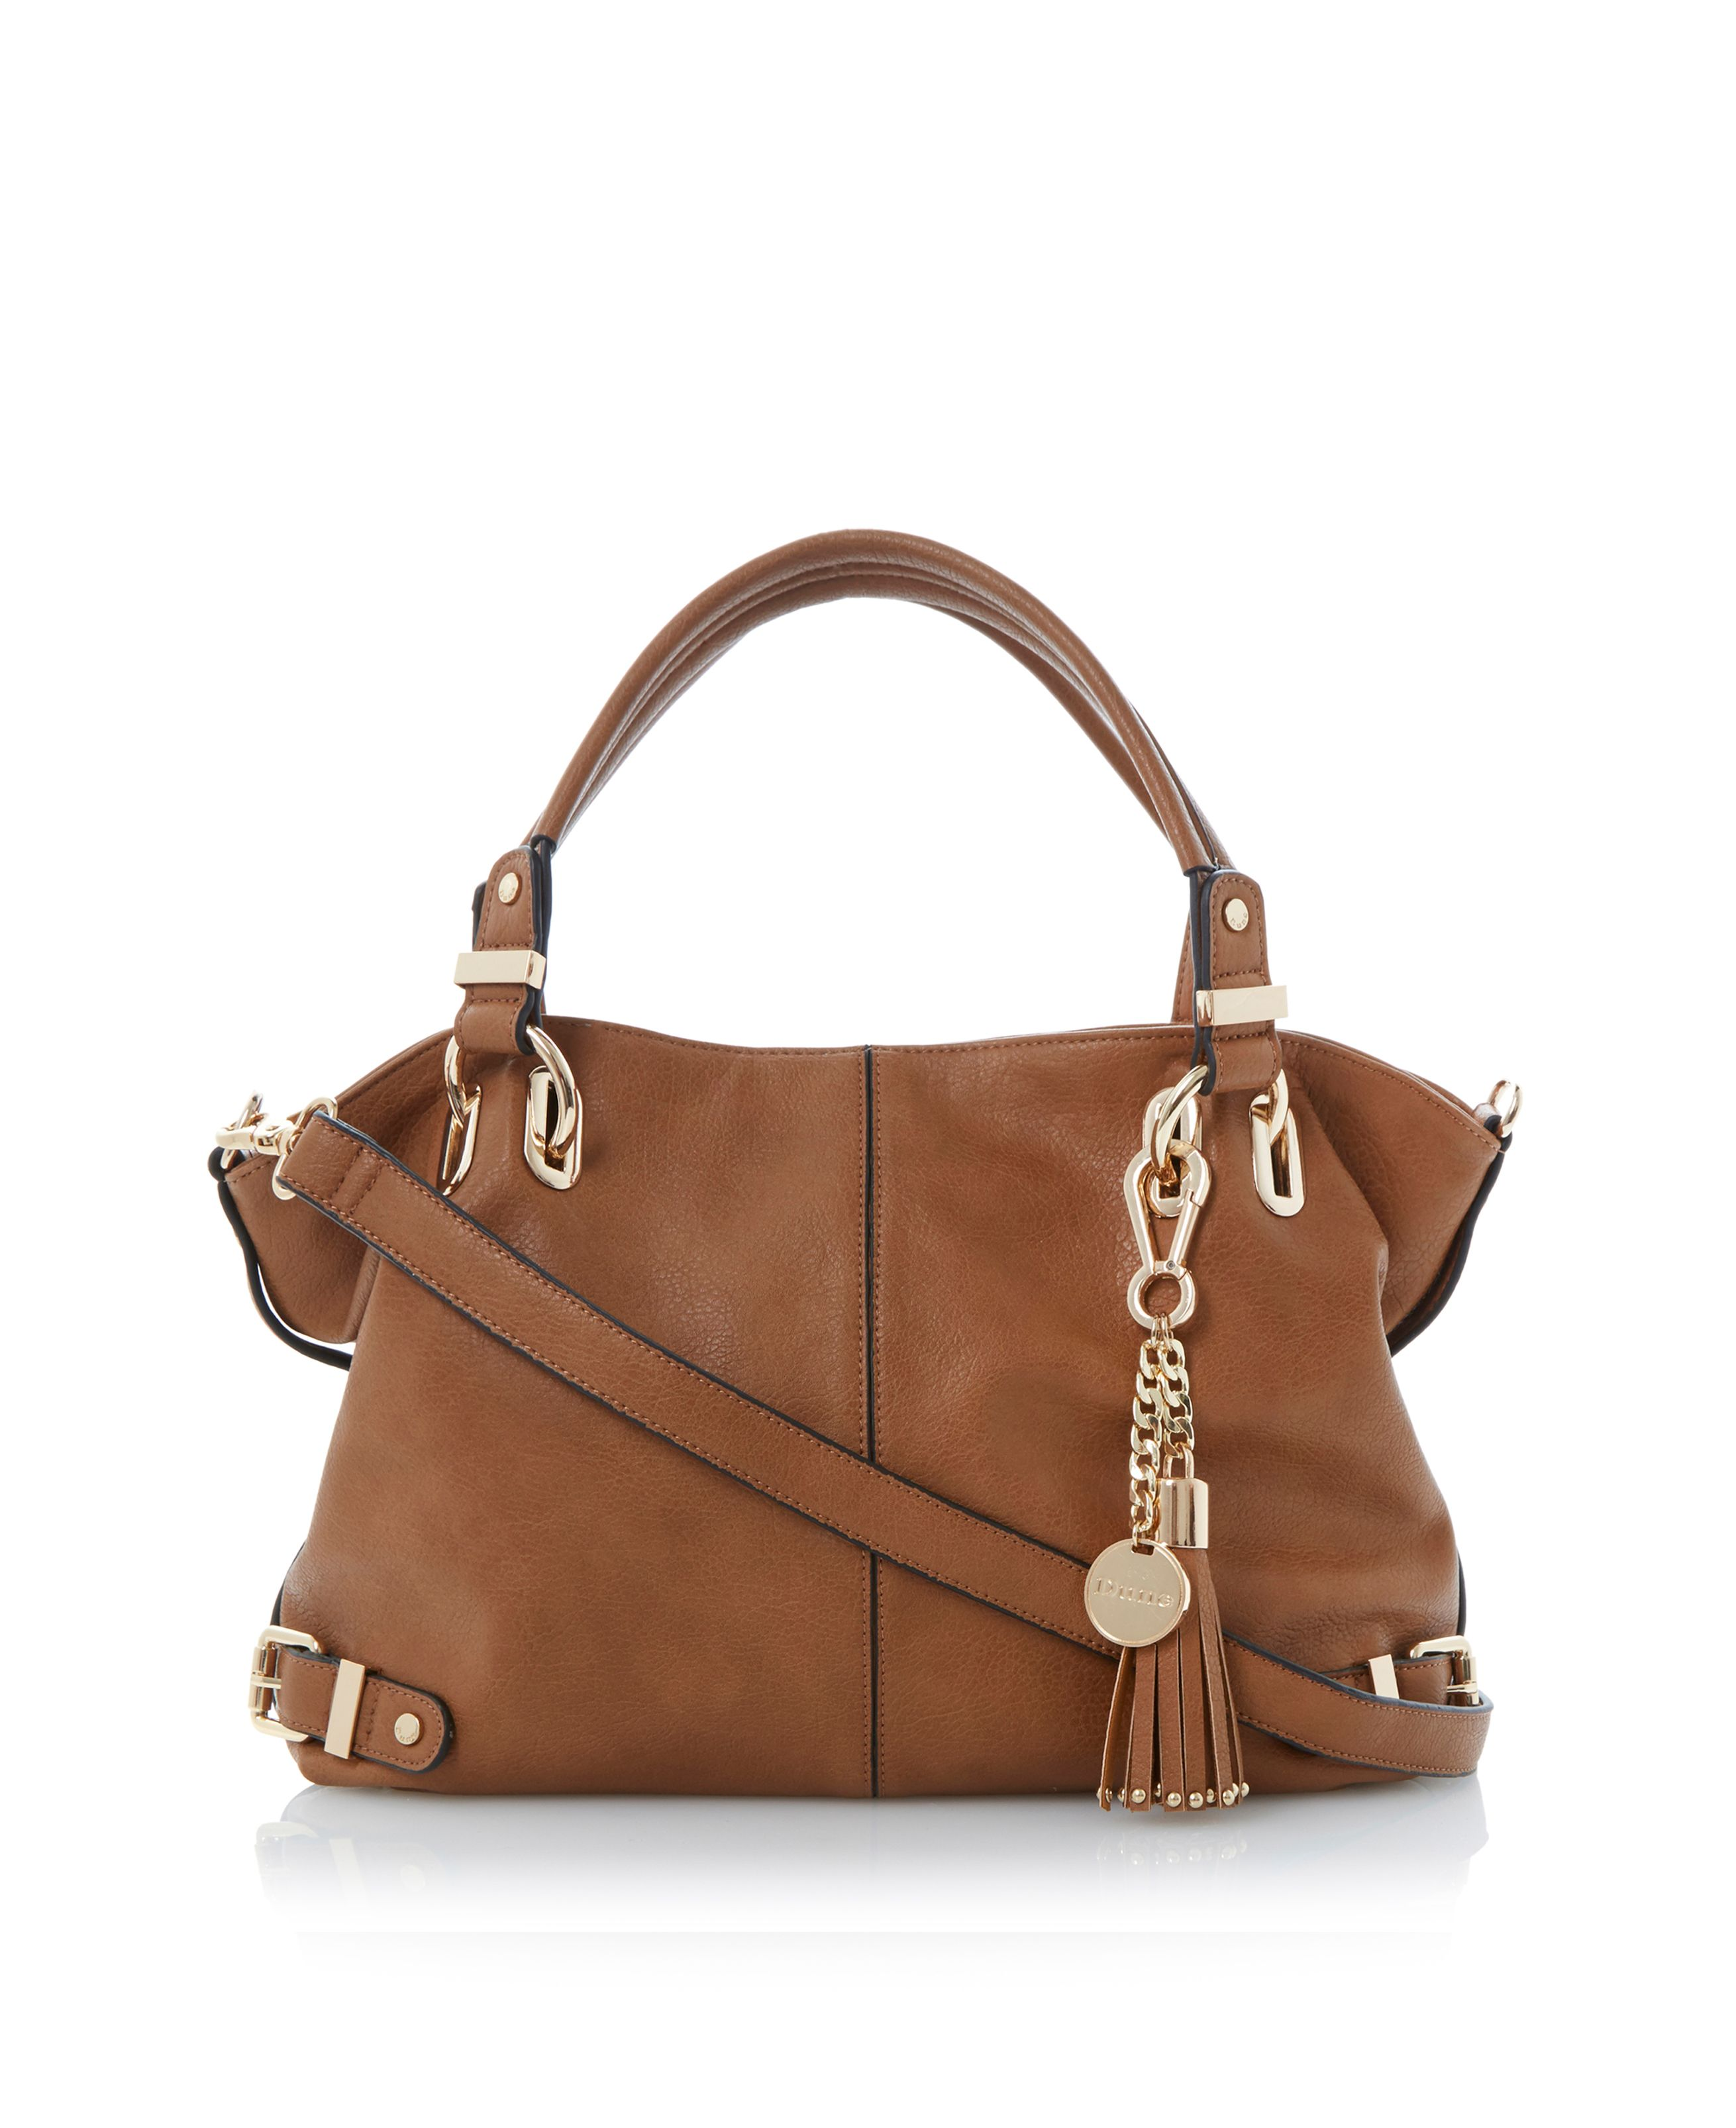 Deather slouchy tassel bag